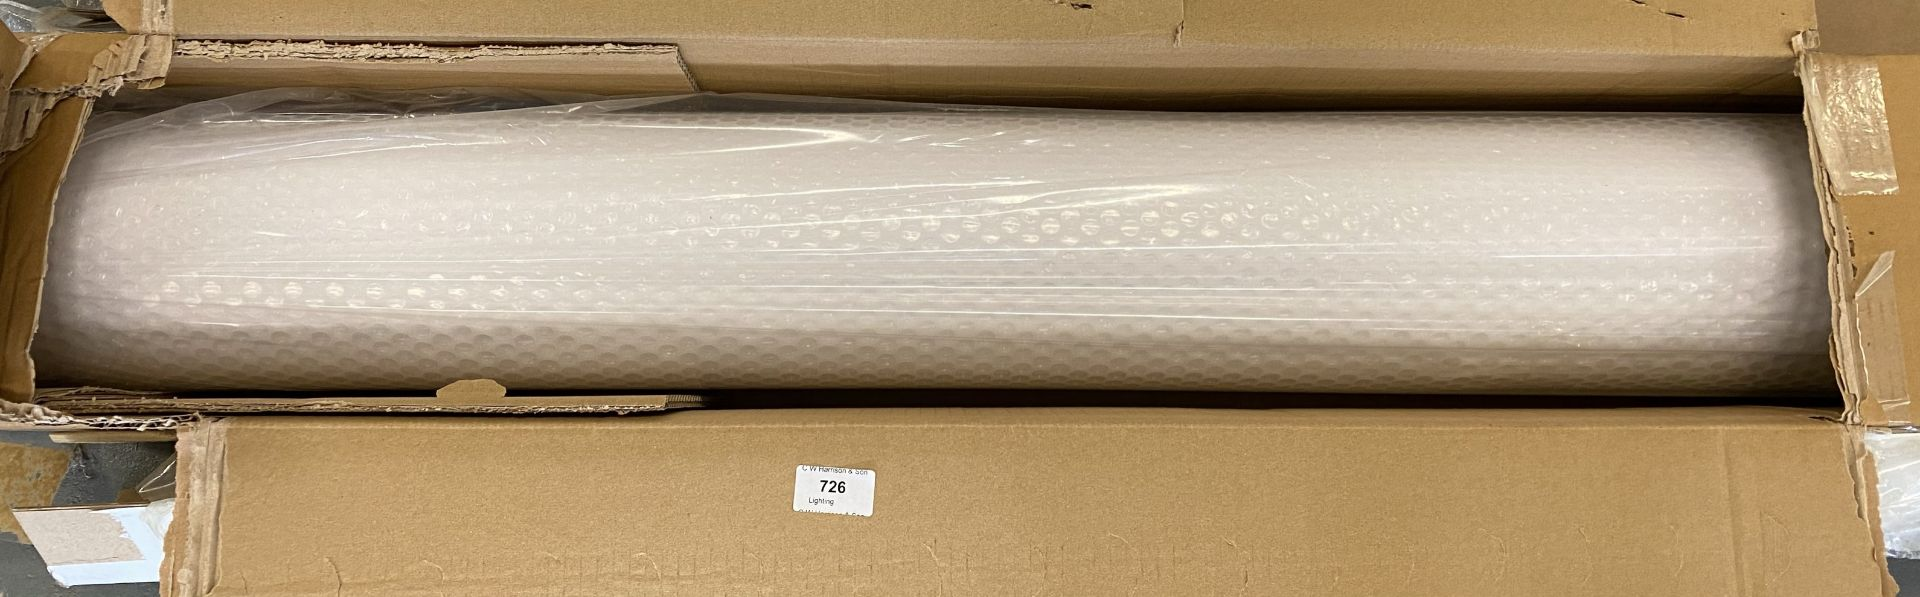 A 330cm long boxed/sealed roll of film/s - Image 2 of 2